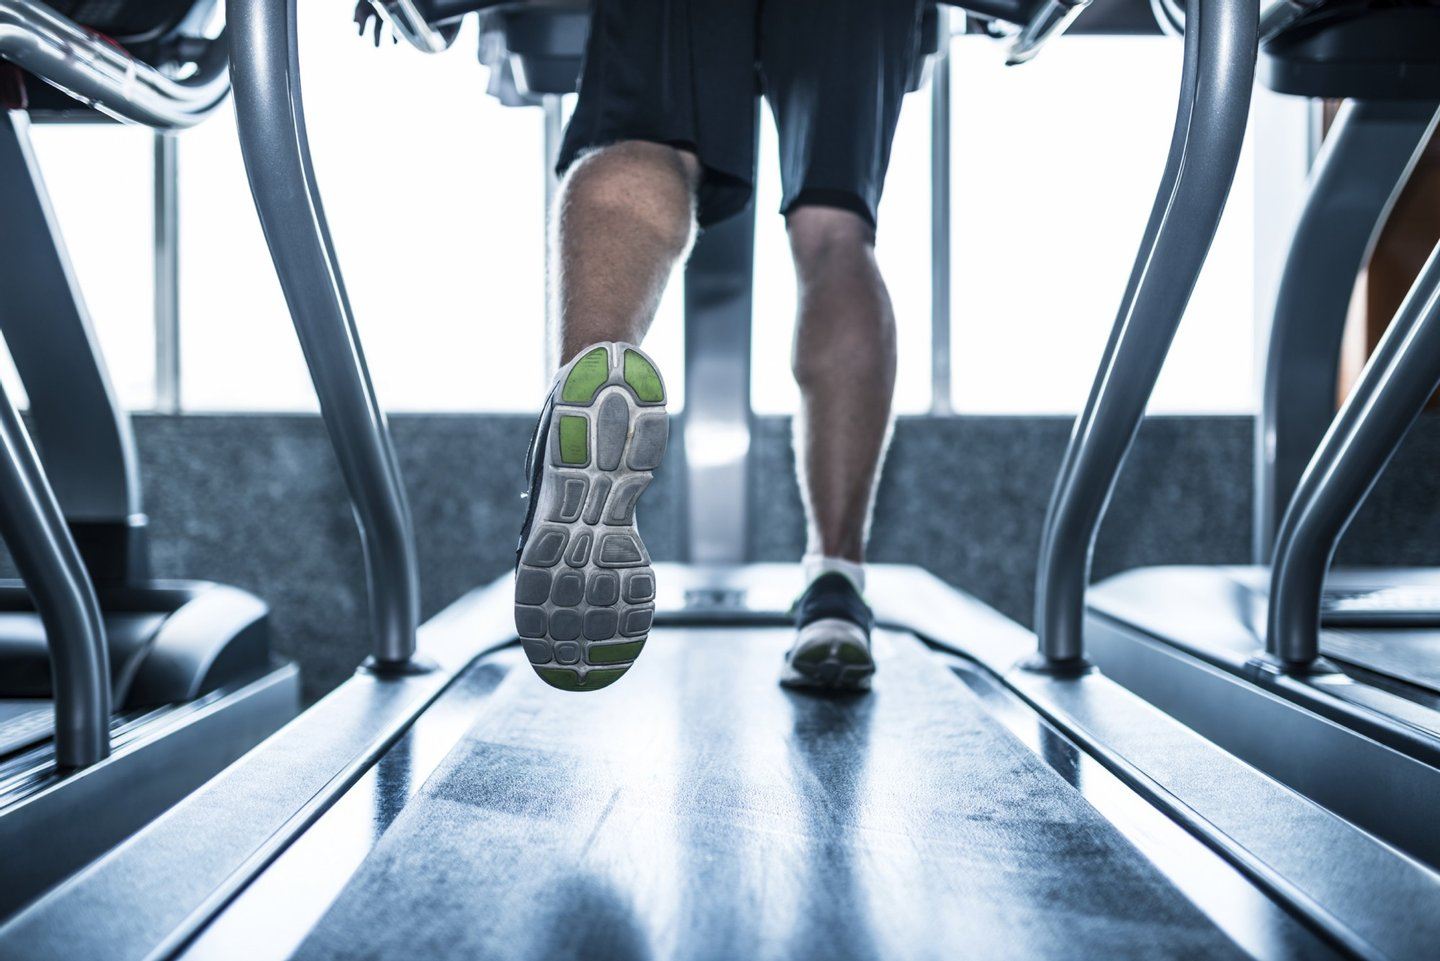 closeup, foot, moving, sole, Sport, gym, equipment, concept, fitness, workout, lifestyle, exercise, man, sportsman, athlete, wellness, male, active, healthy, legs, running, jogging, treadmill, trainers, zzzaeaaaaieefdedfpdddadddi,